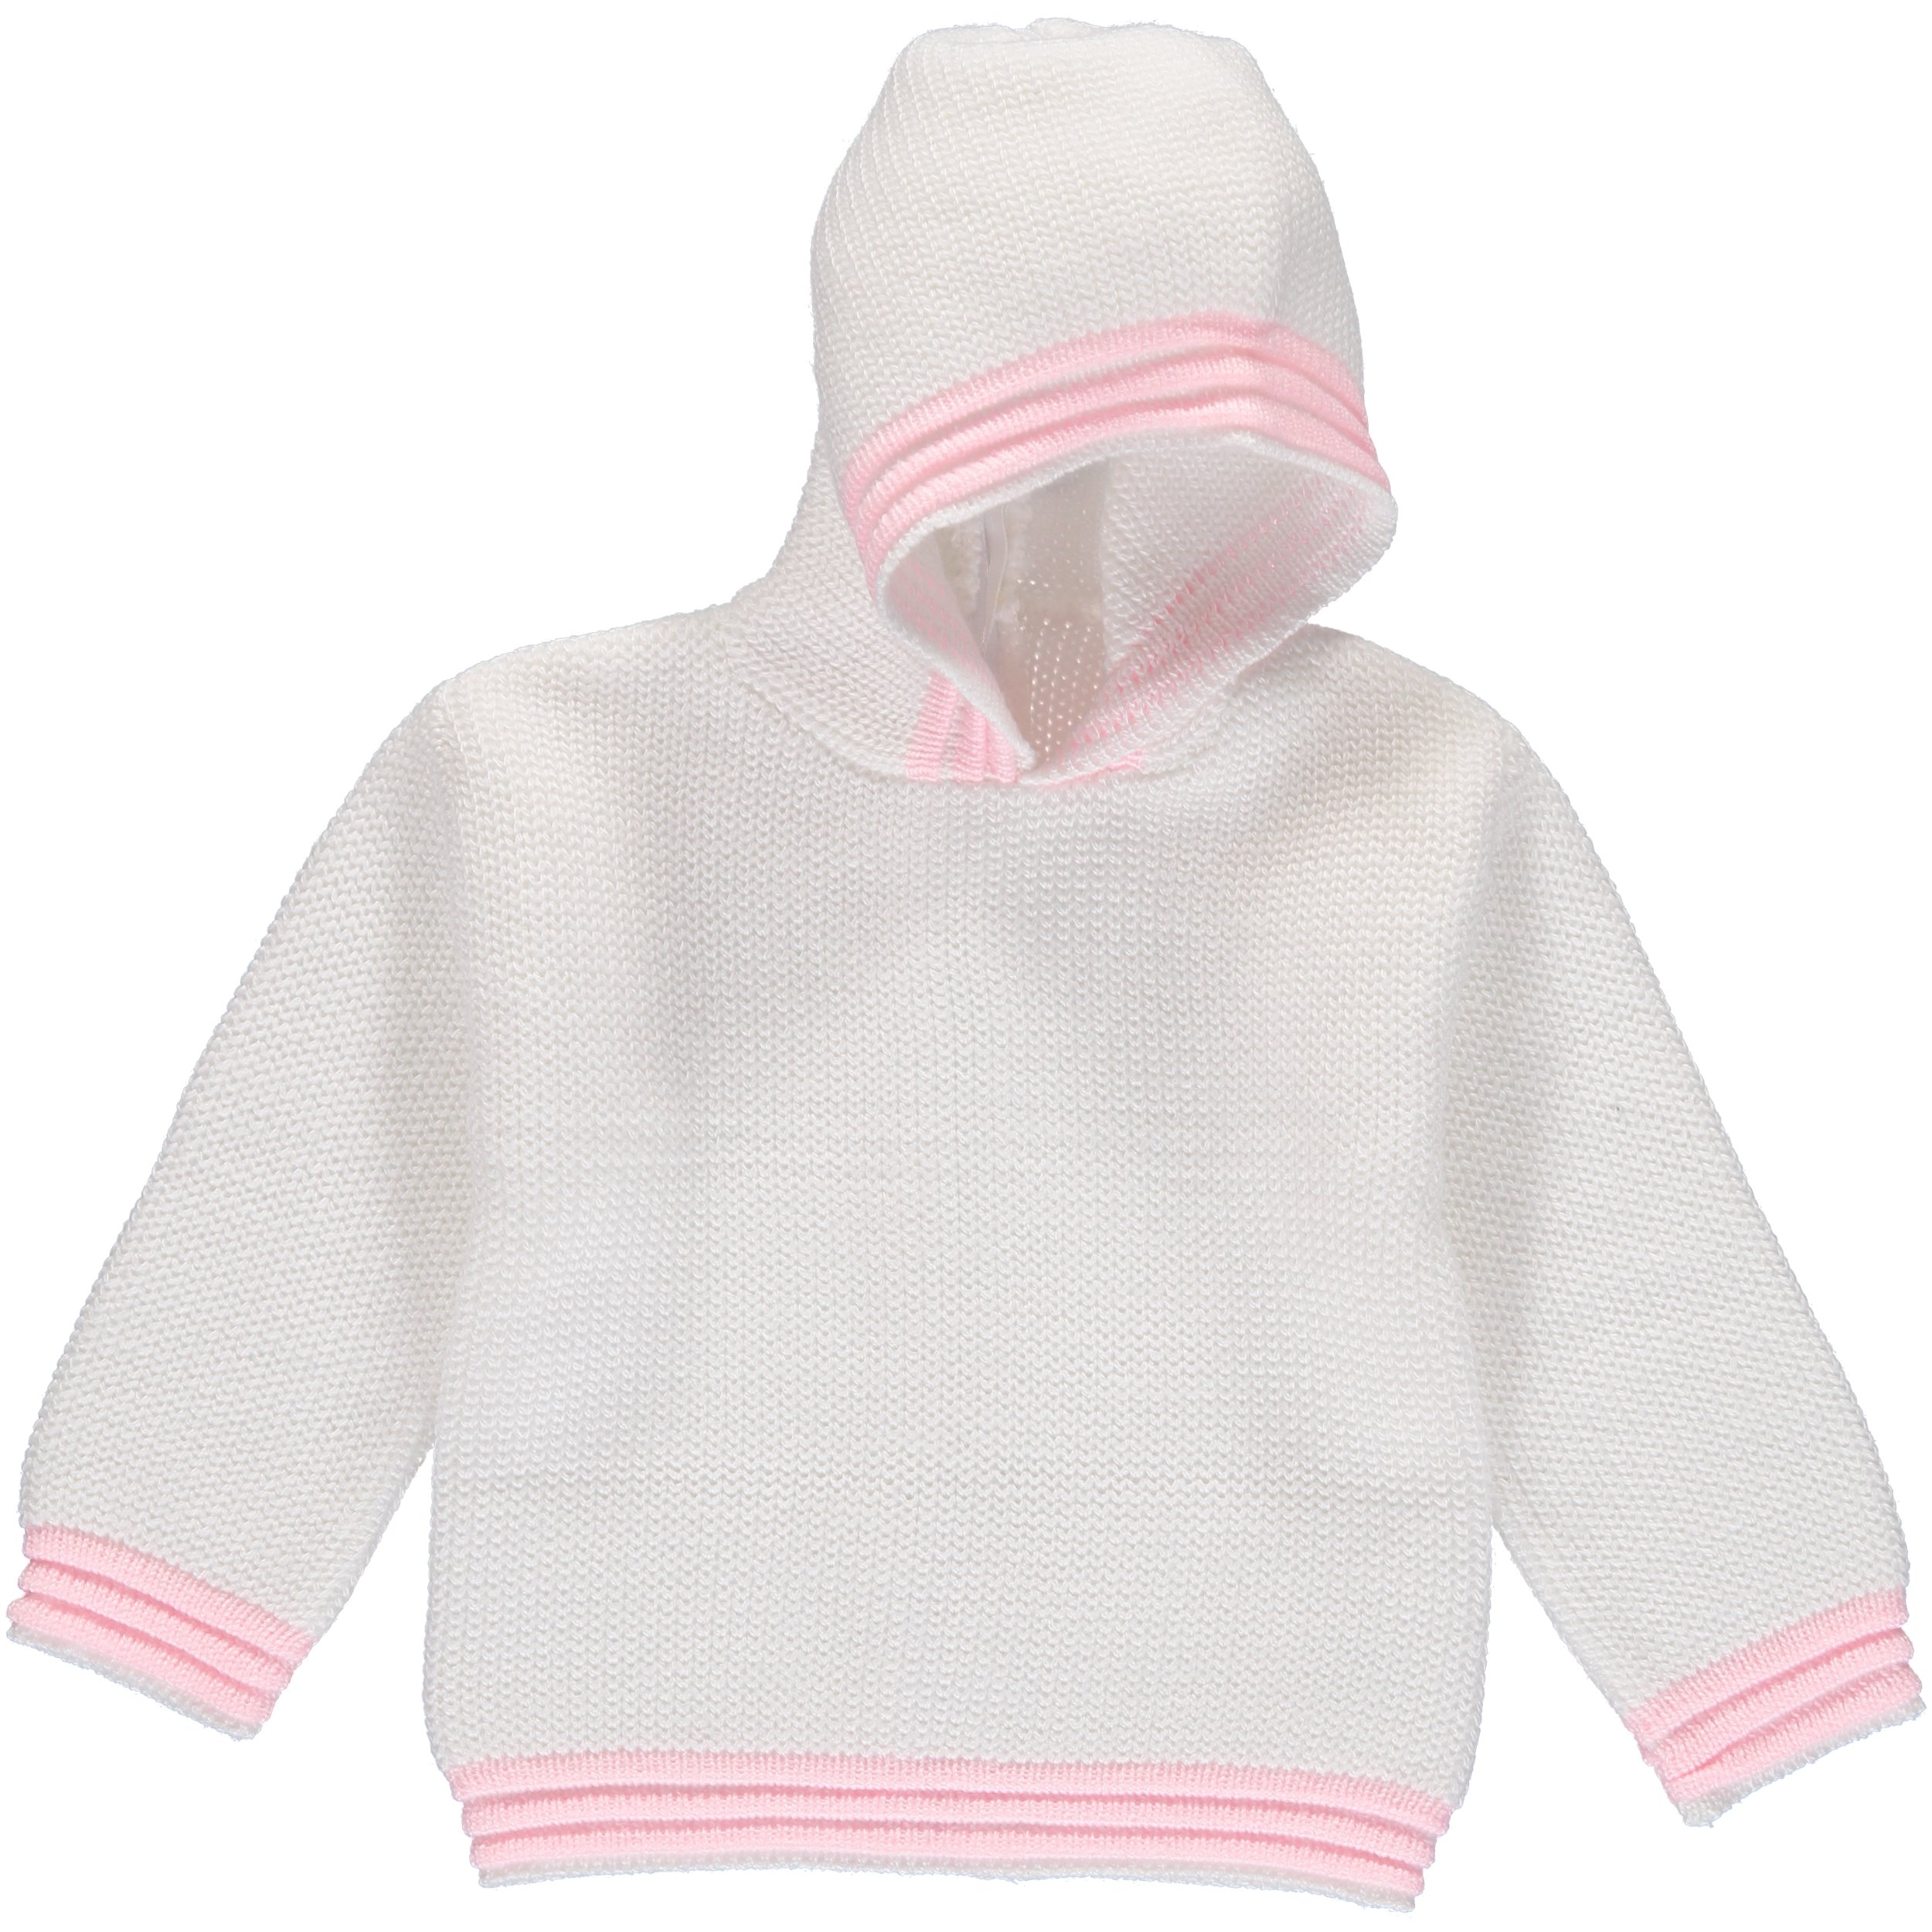 Julius Berger White & Pink Zip Back Hoodie - 24 Months by Julius Berger